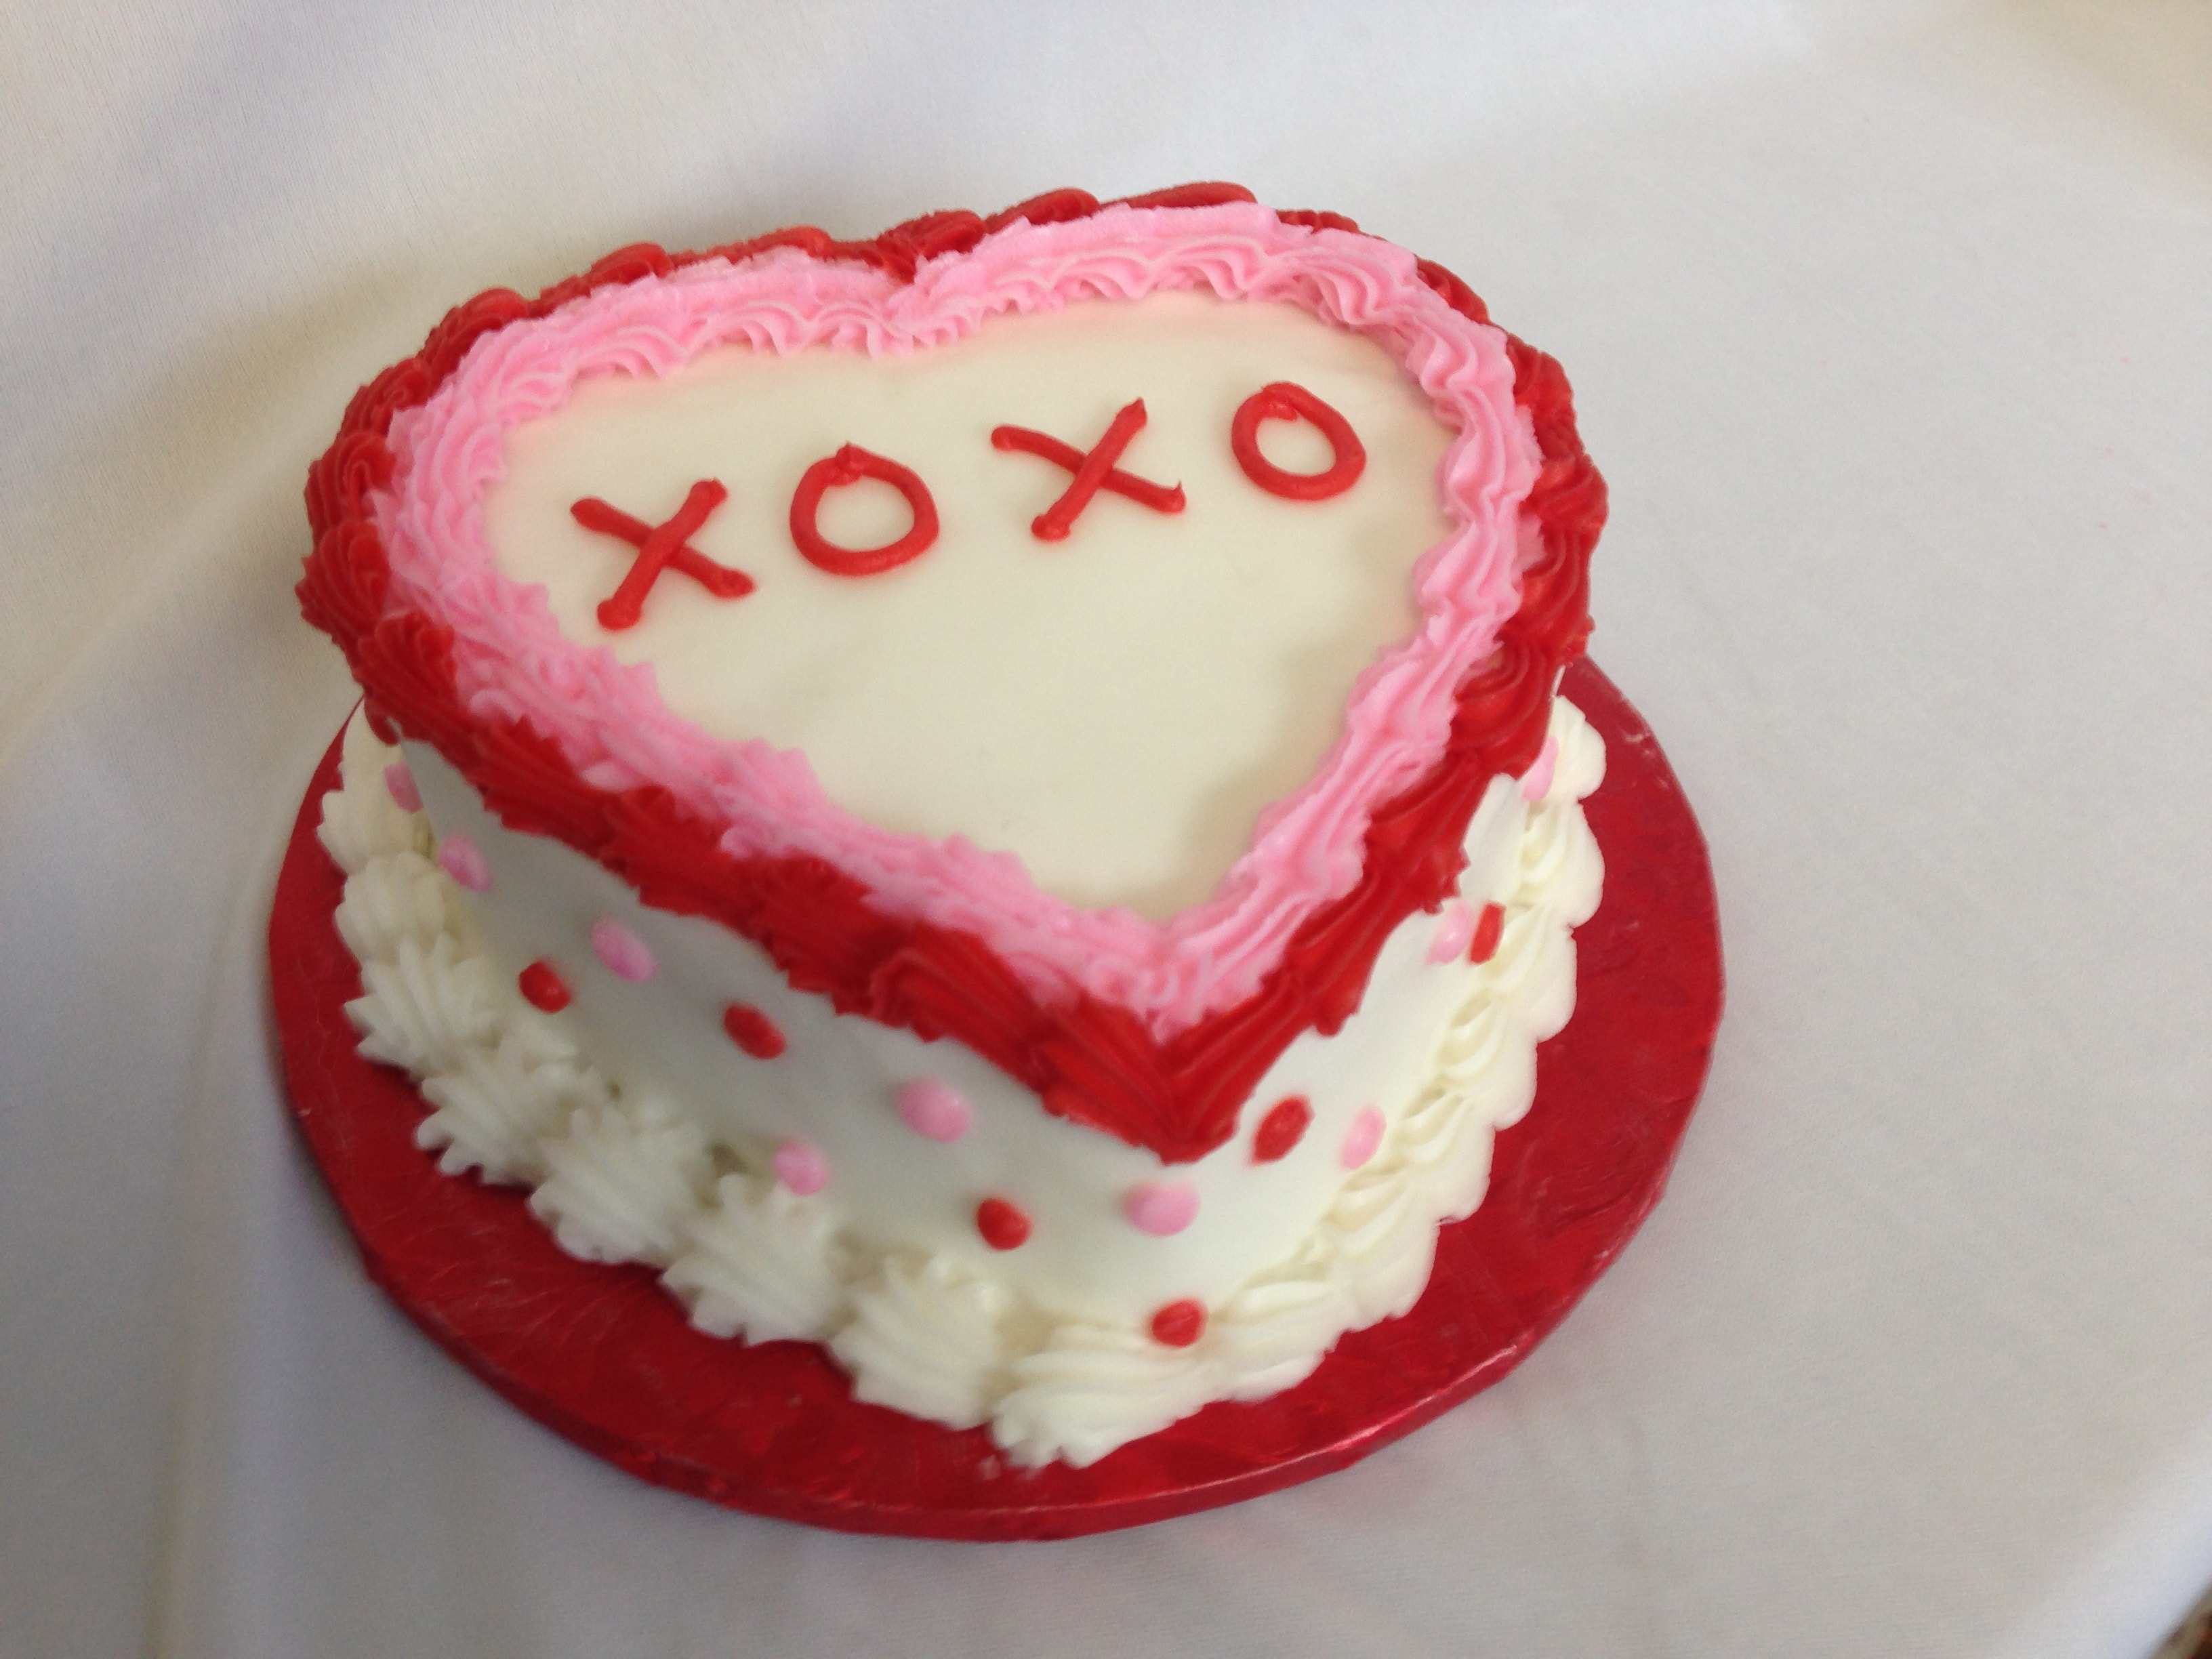 Six Inch Heart Cake 2/12-2/13 only